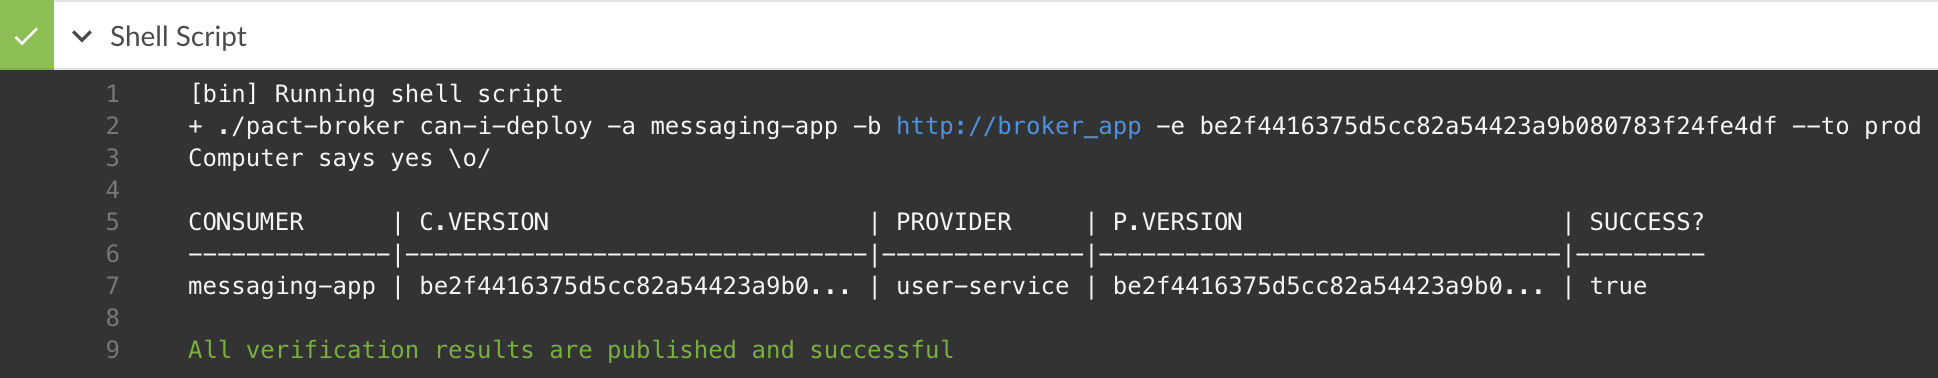 kreuzwerker | Integration into build pipeline with Pact Broker and